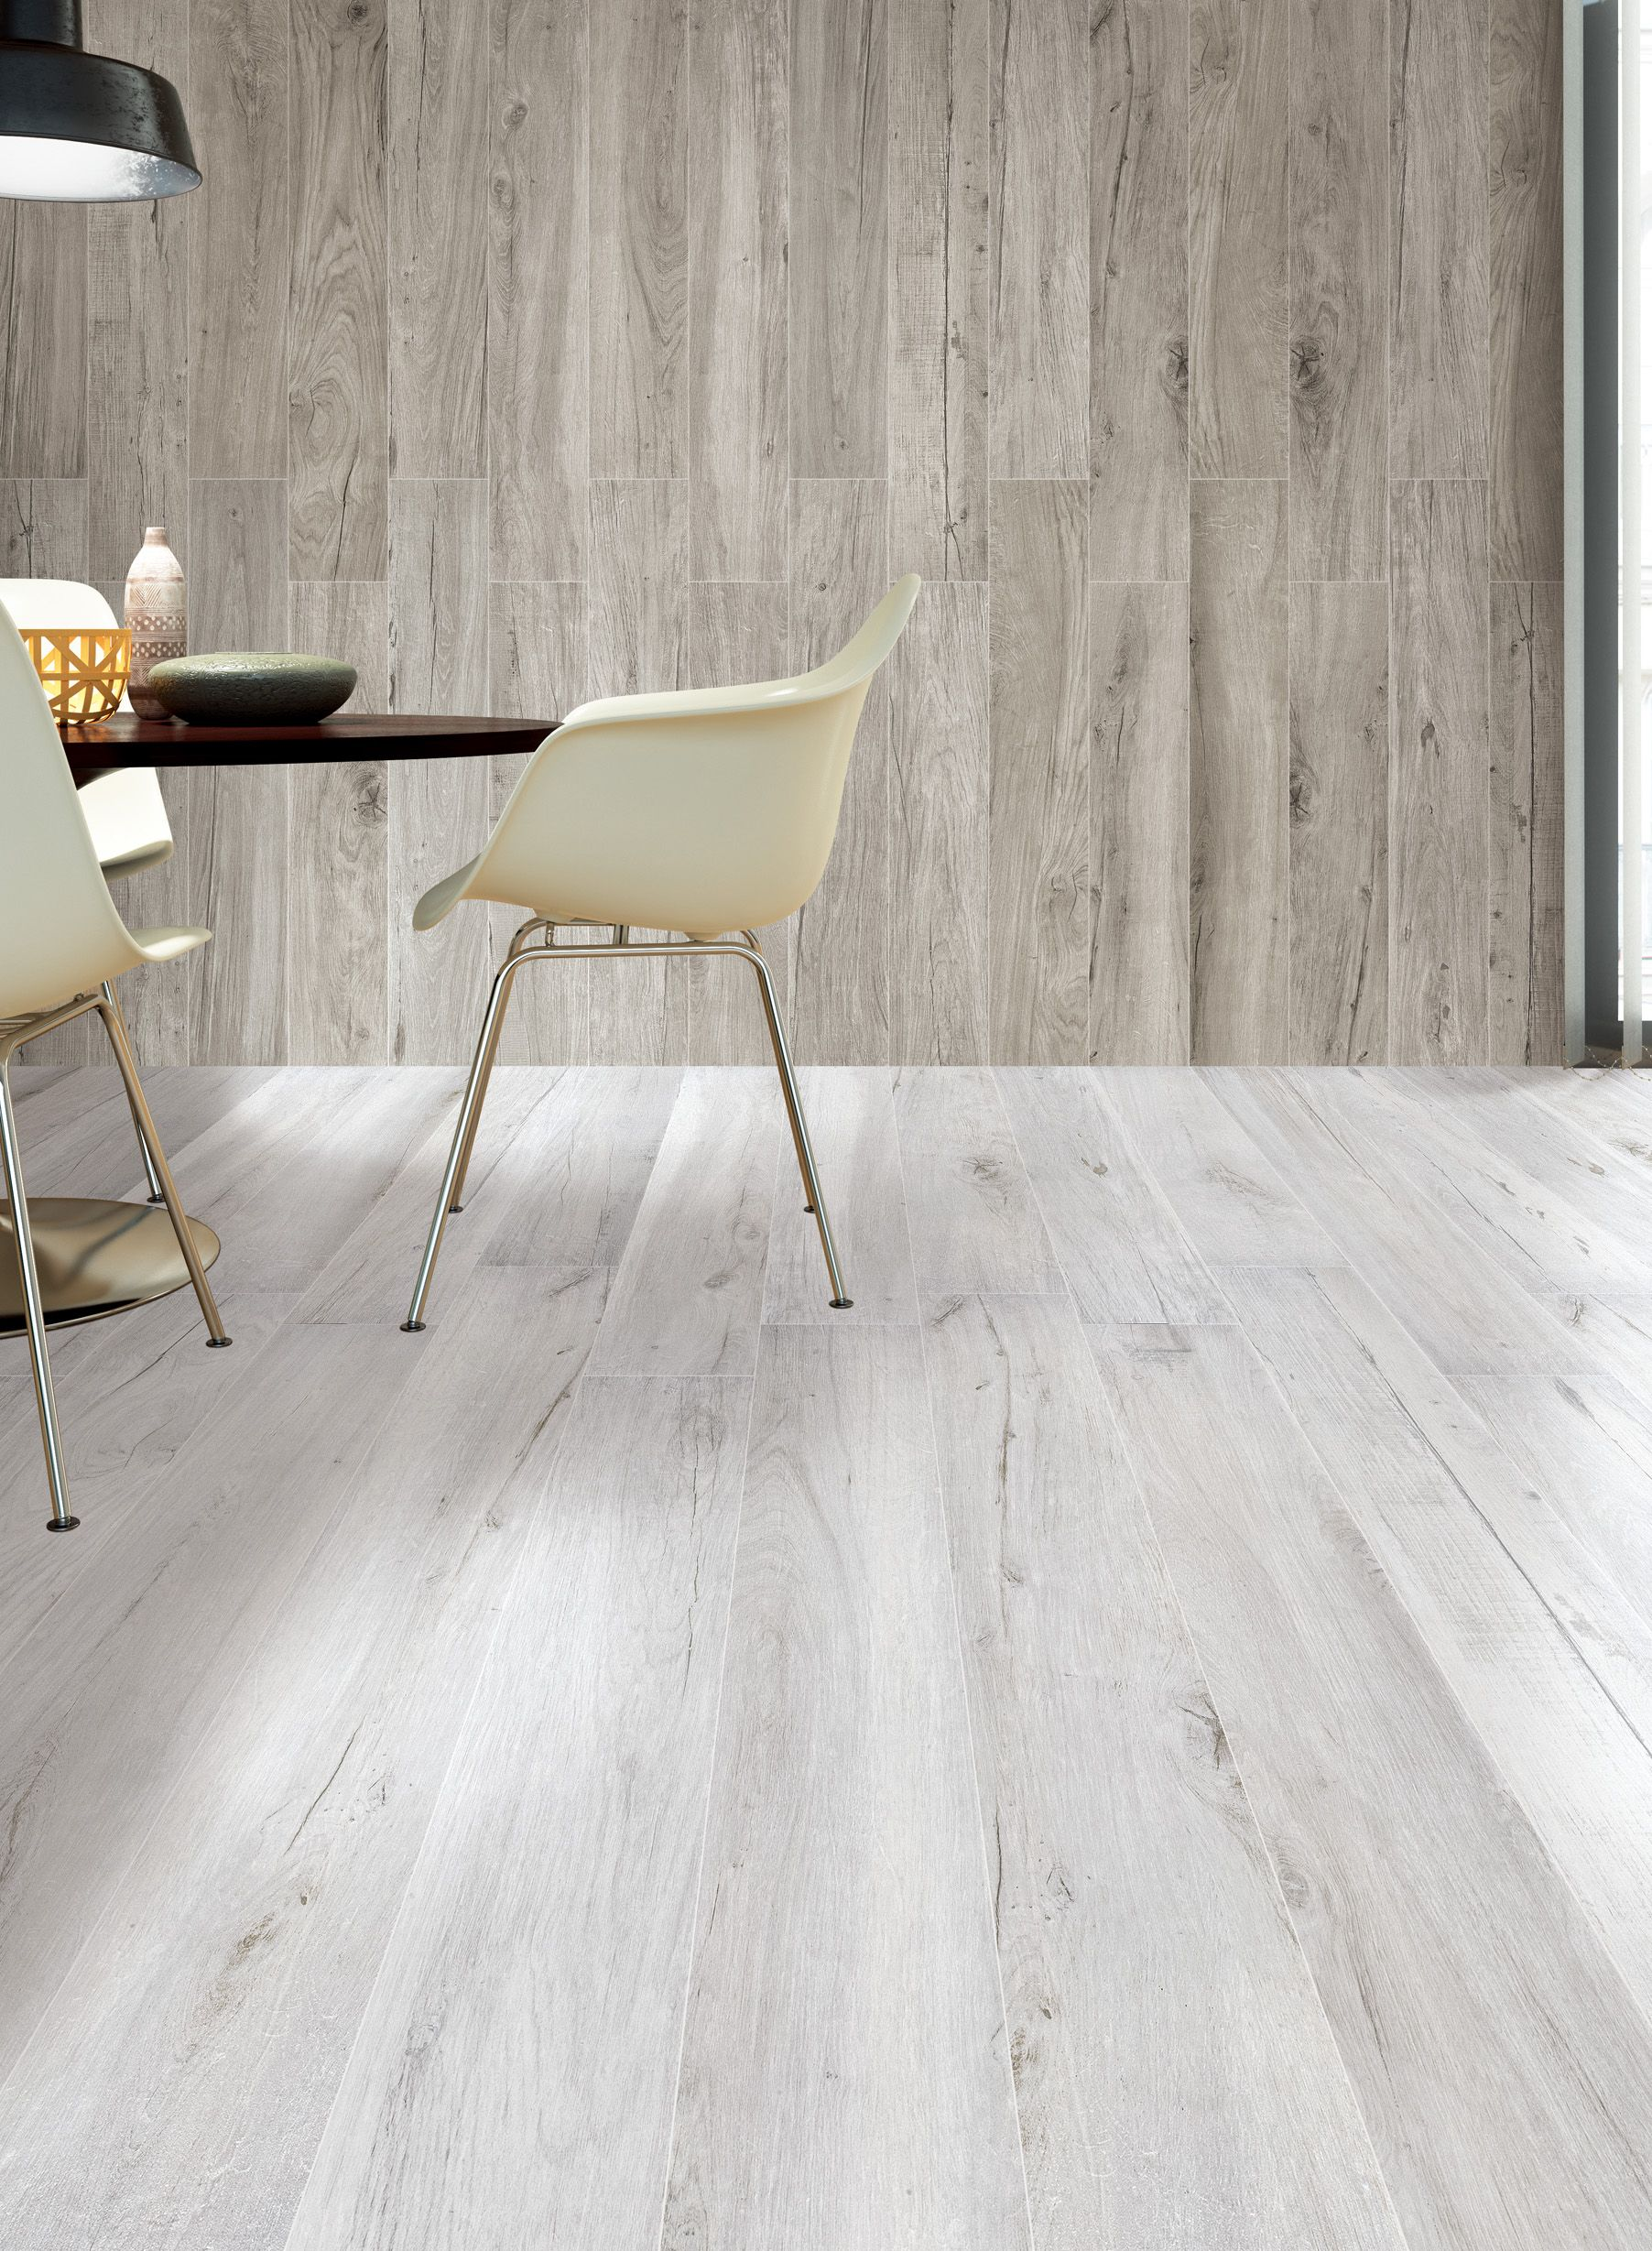 Is this real enough gorgeous rectified wood look porcelain gorgeous rectified wood look porcelain tiles available doublecrazyfo Images